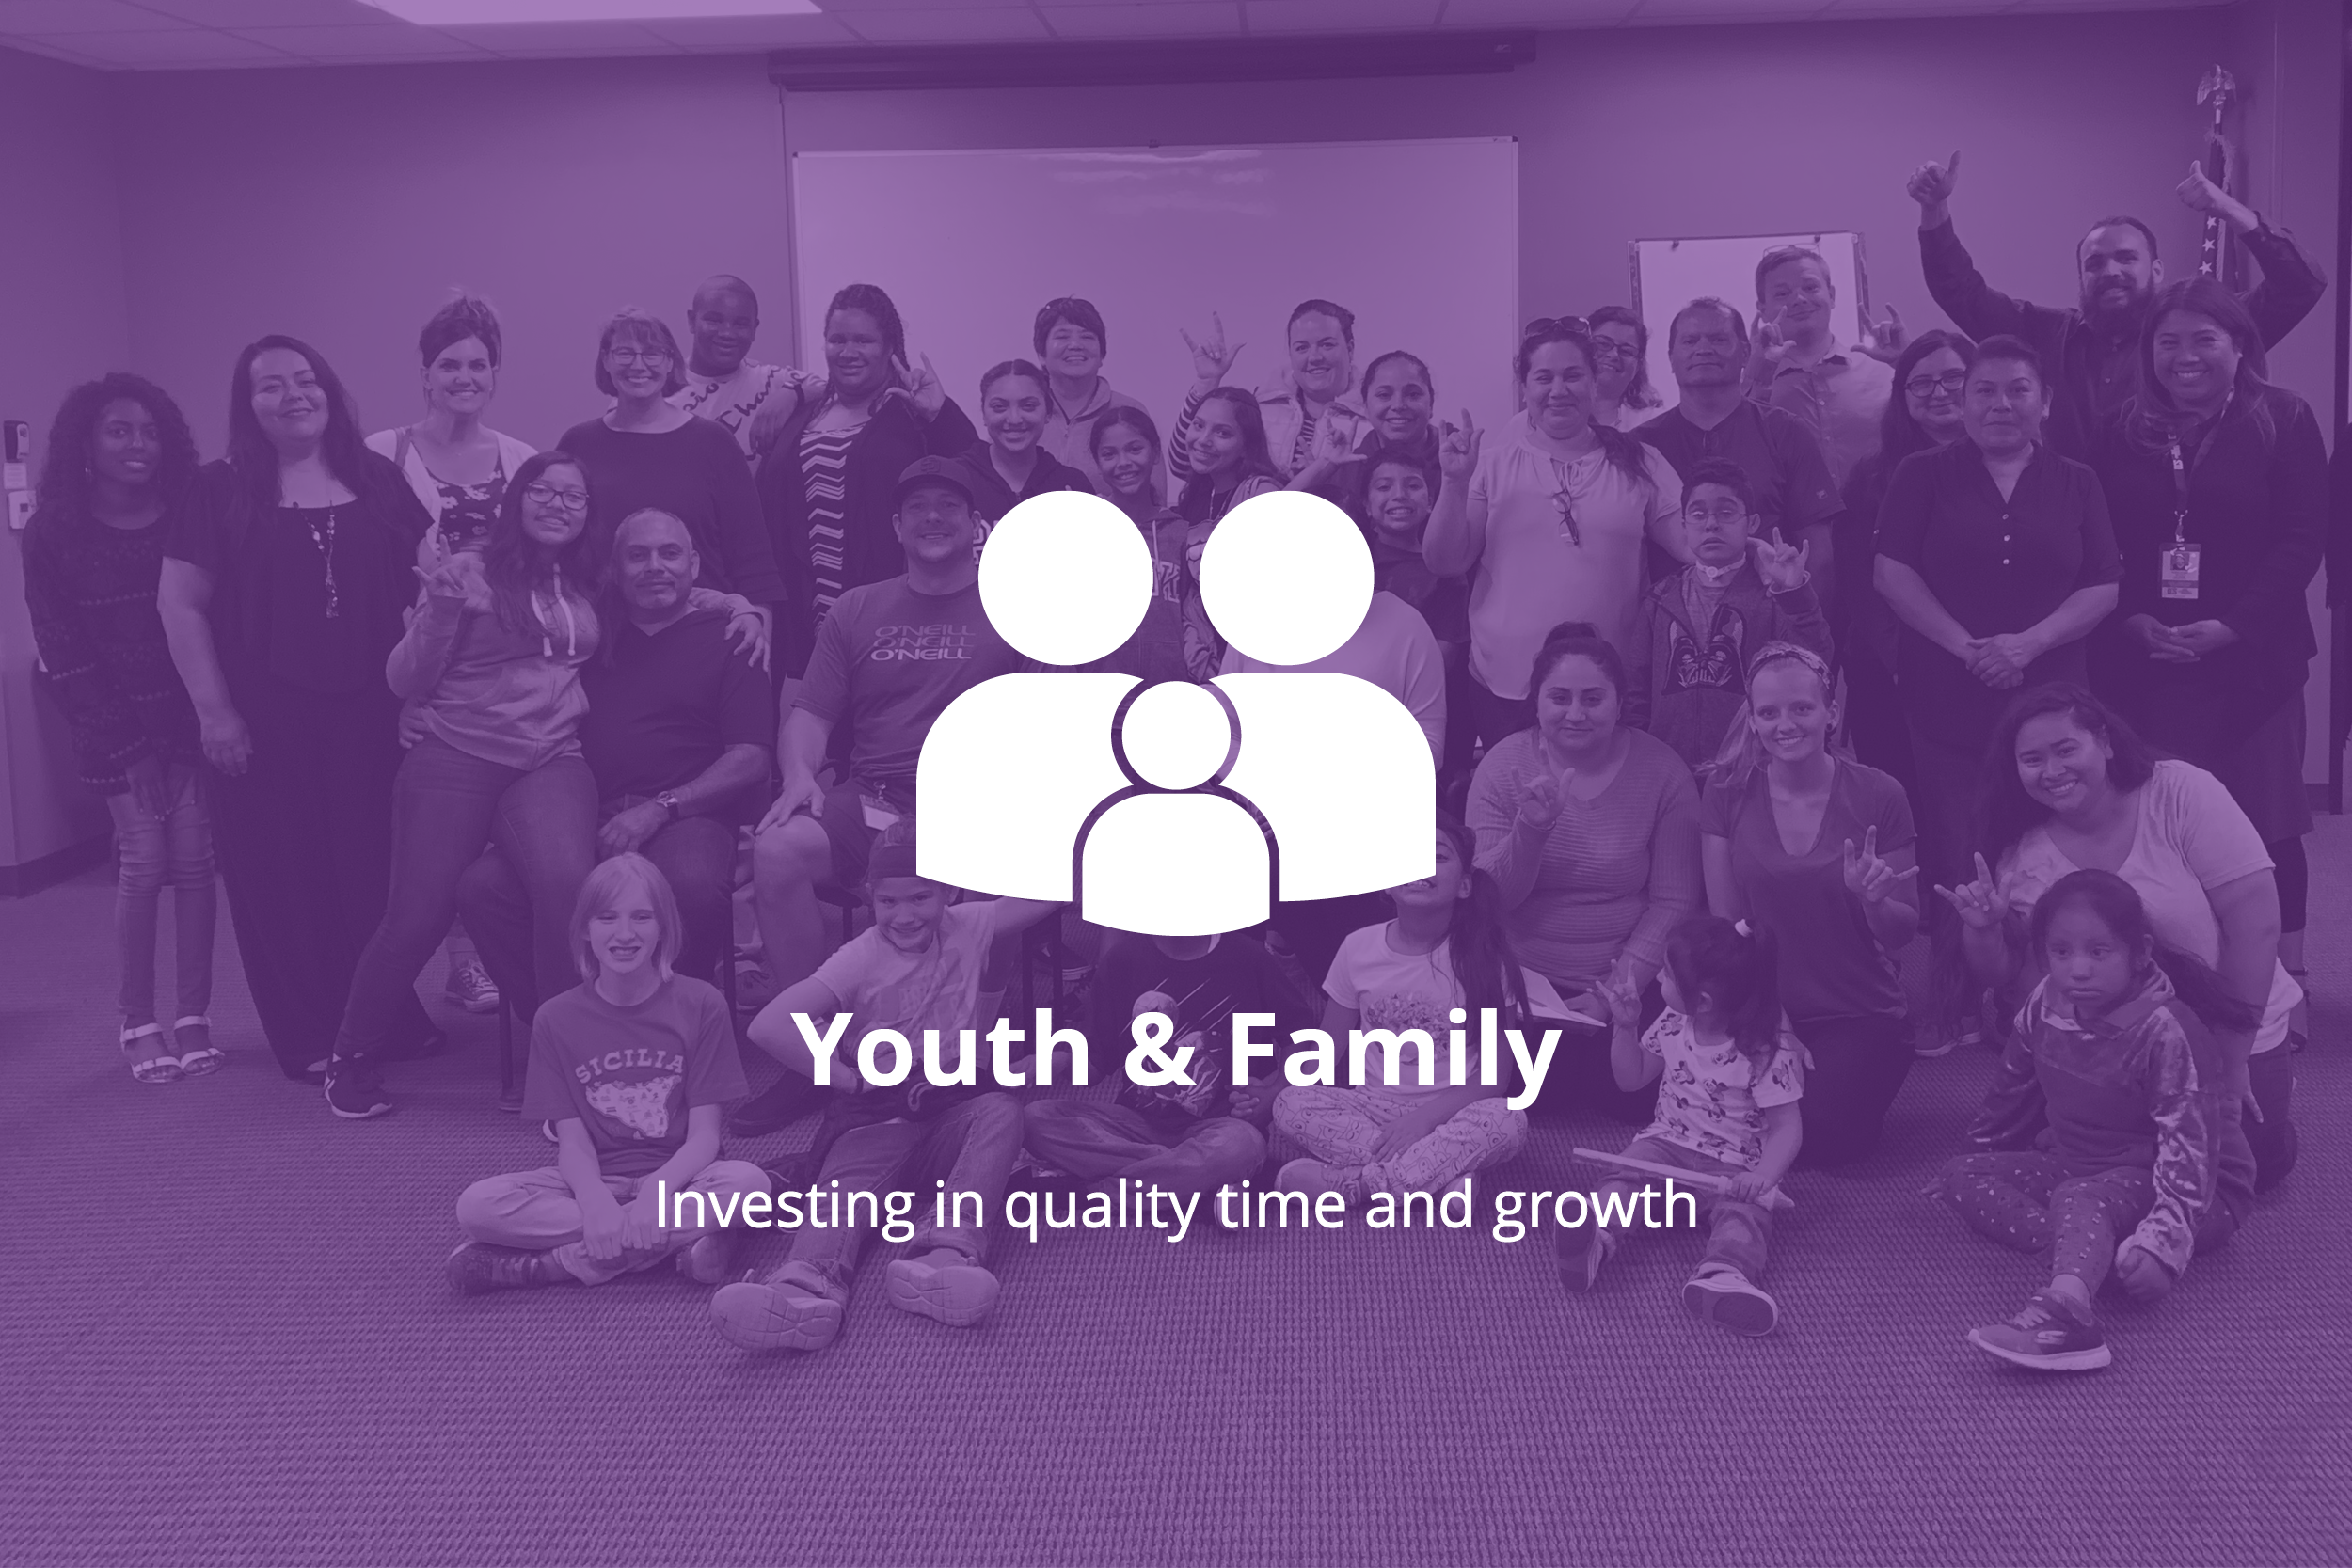 Background photo of a group of people, looking at the camera and smiling. Forefront: logo of two adult figures and one child figure. Text: Youth & Family, investing in quality time and growth.